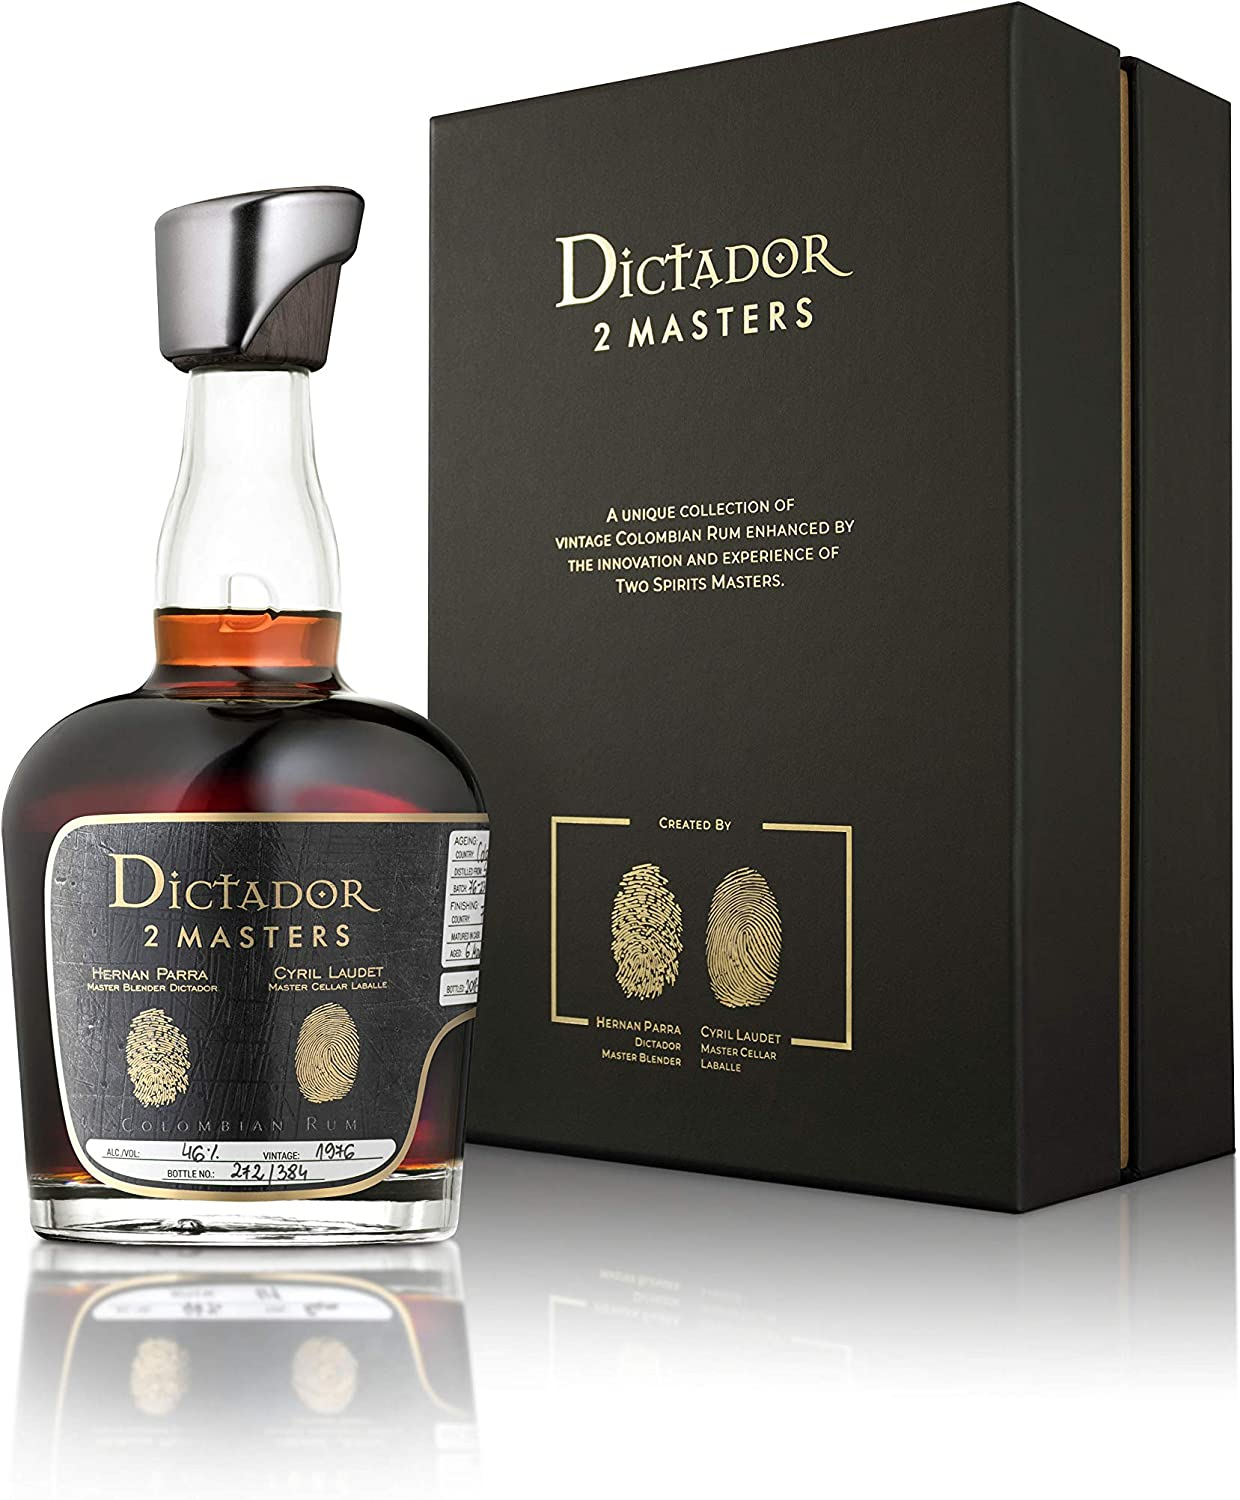 Dictador 2 MASTERS 37 Years Old Colombian Rum Château d ...